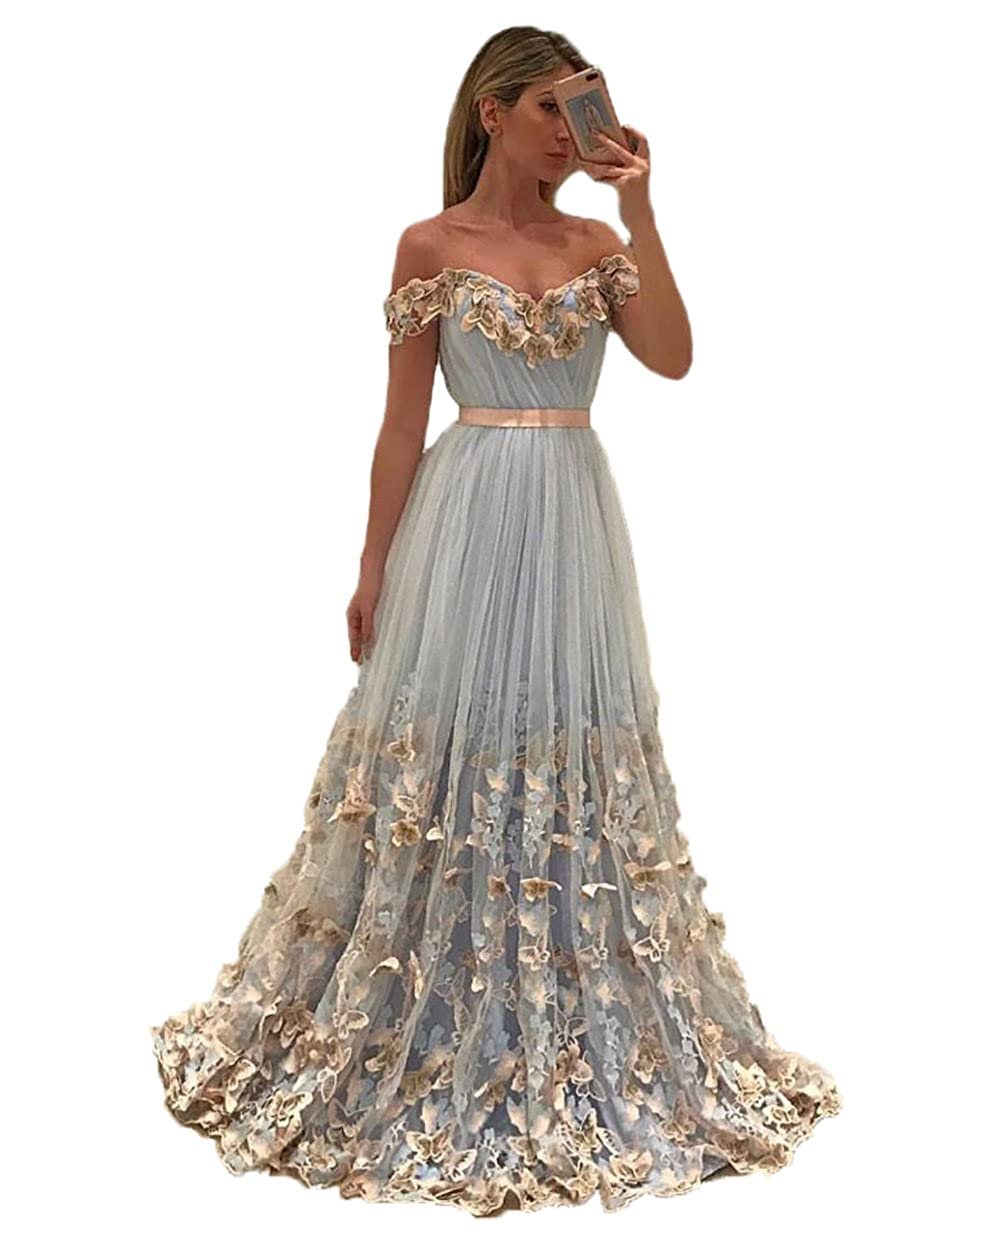 Uryouthstyle 2017 Off Shoulder Long A-line Prom Dresses with Butterfly